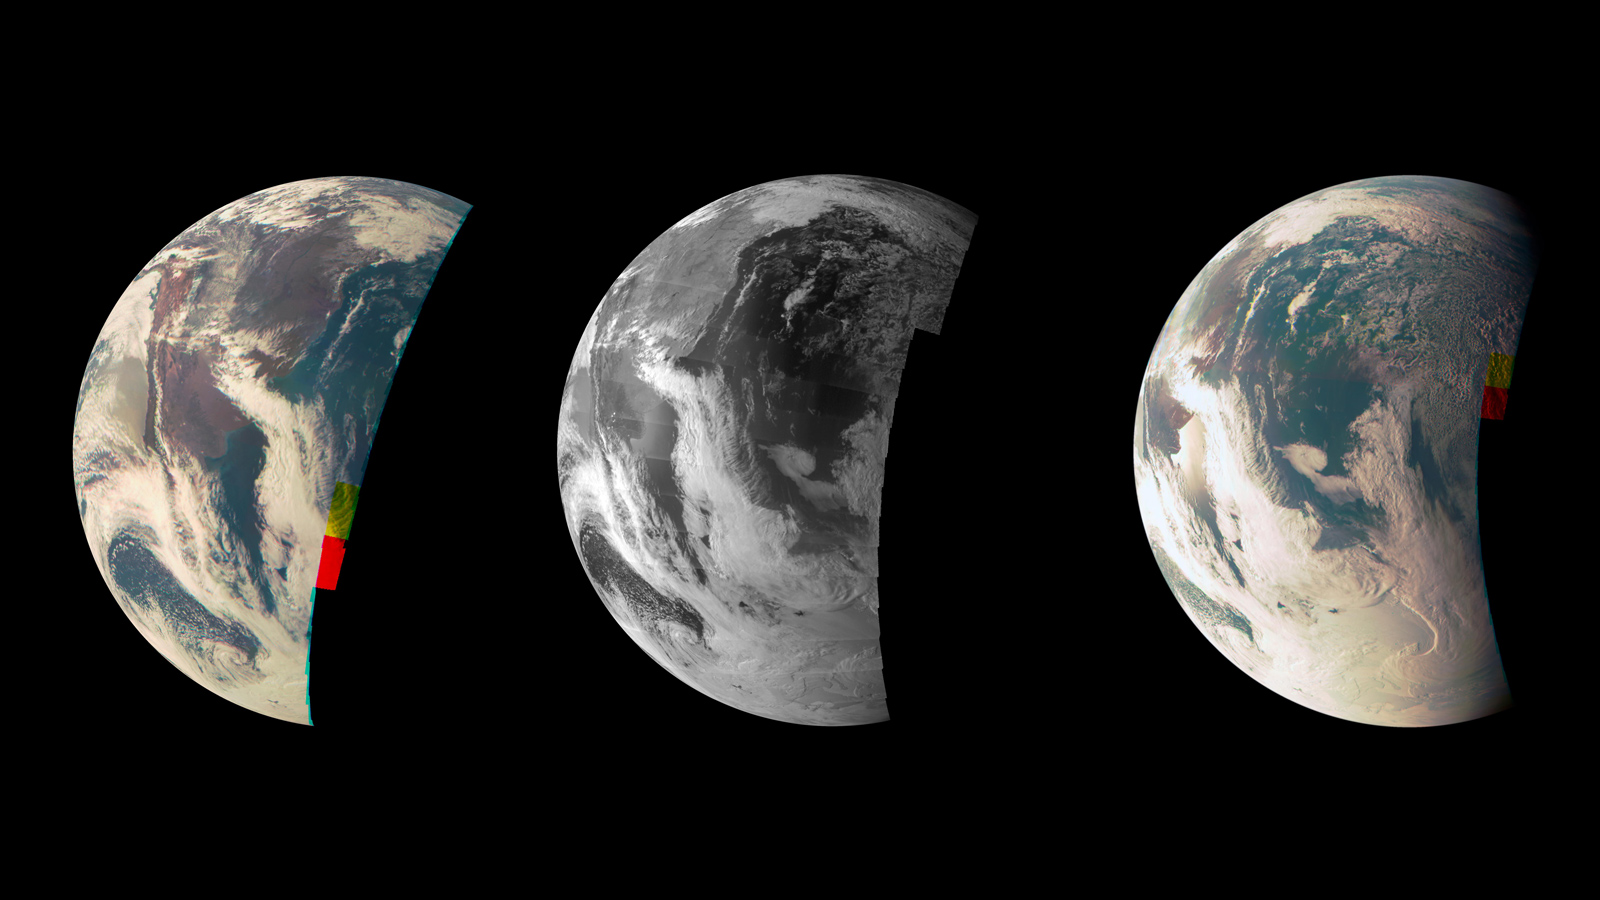 This trio of Junocam views of Earth was taken during Juno's close flyby on 9 October 2013. Credit: NASA/JPL-Caltech/MSSS